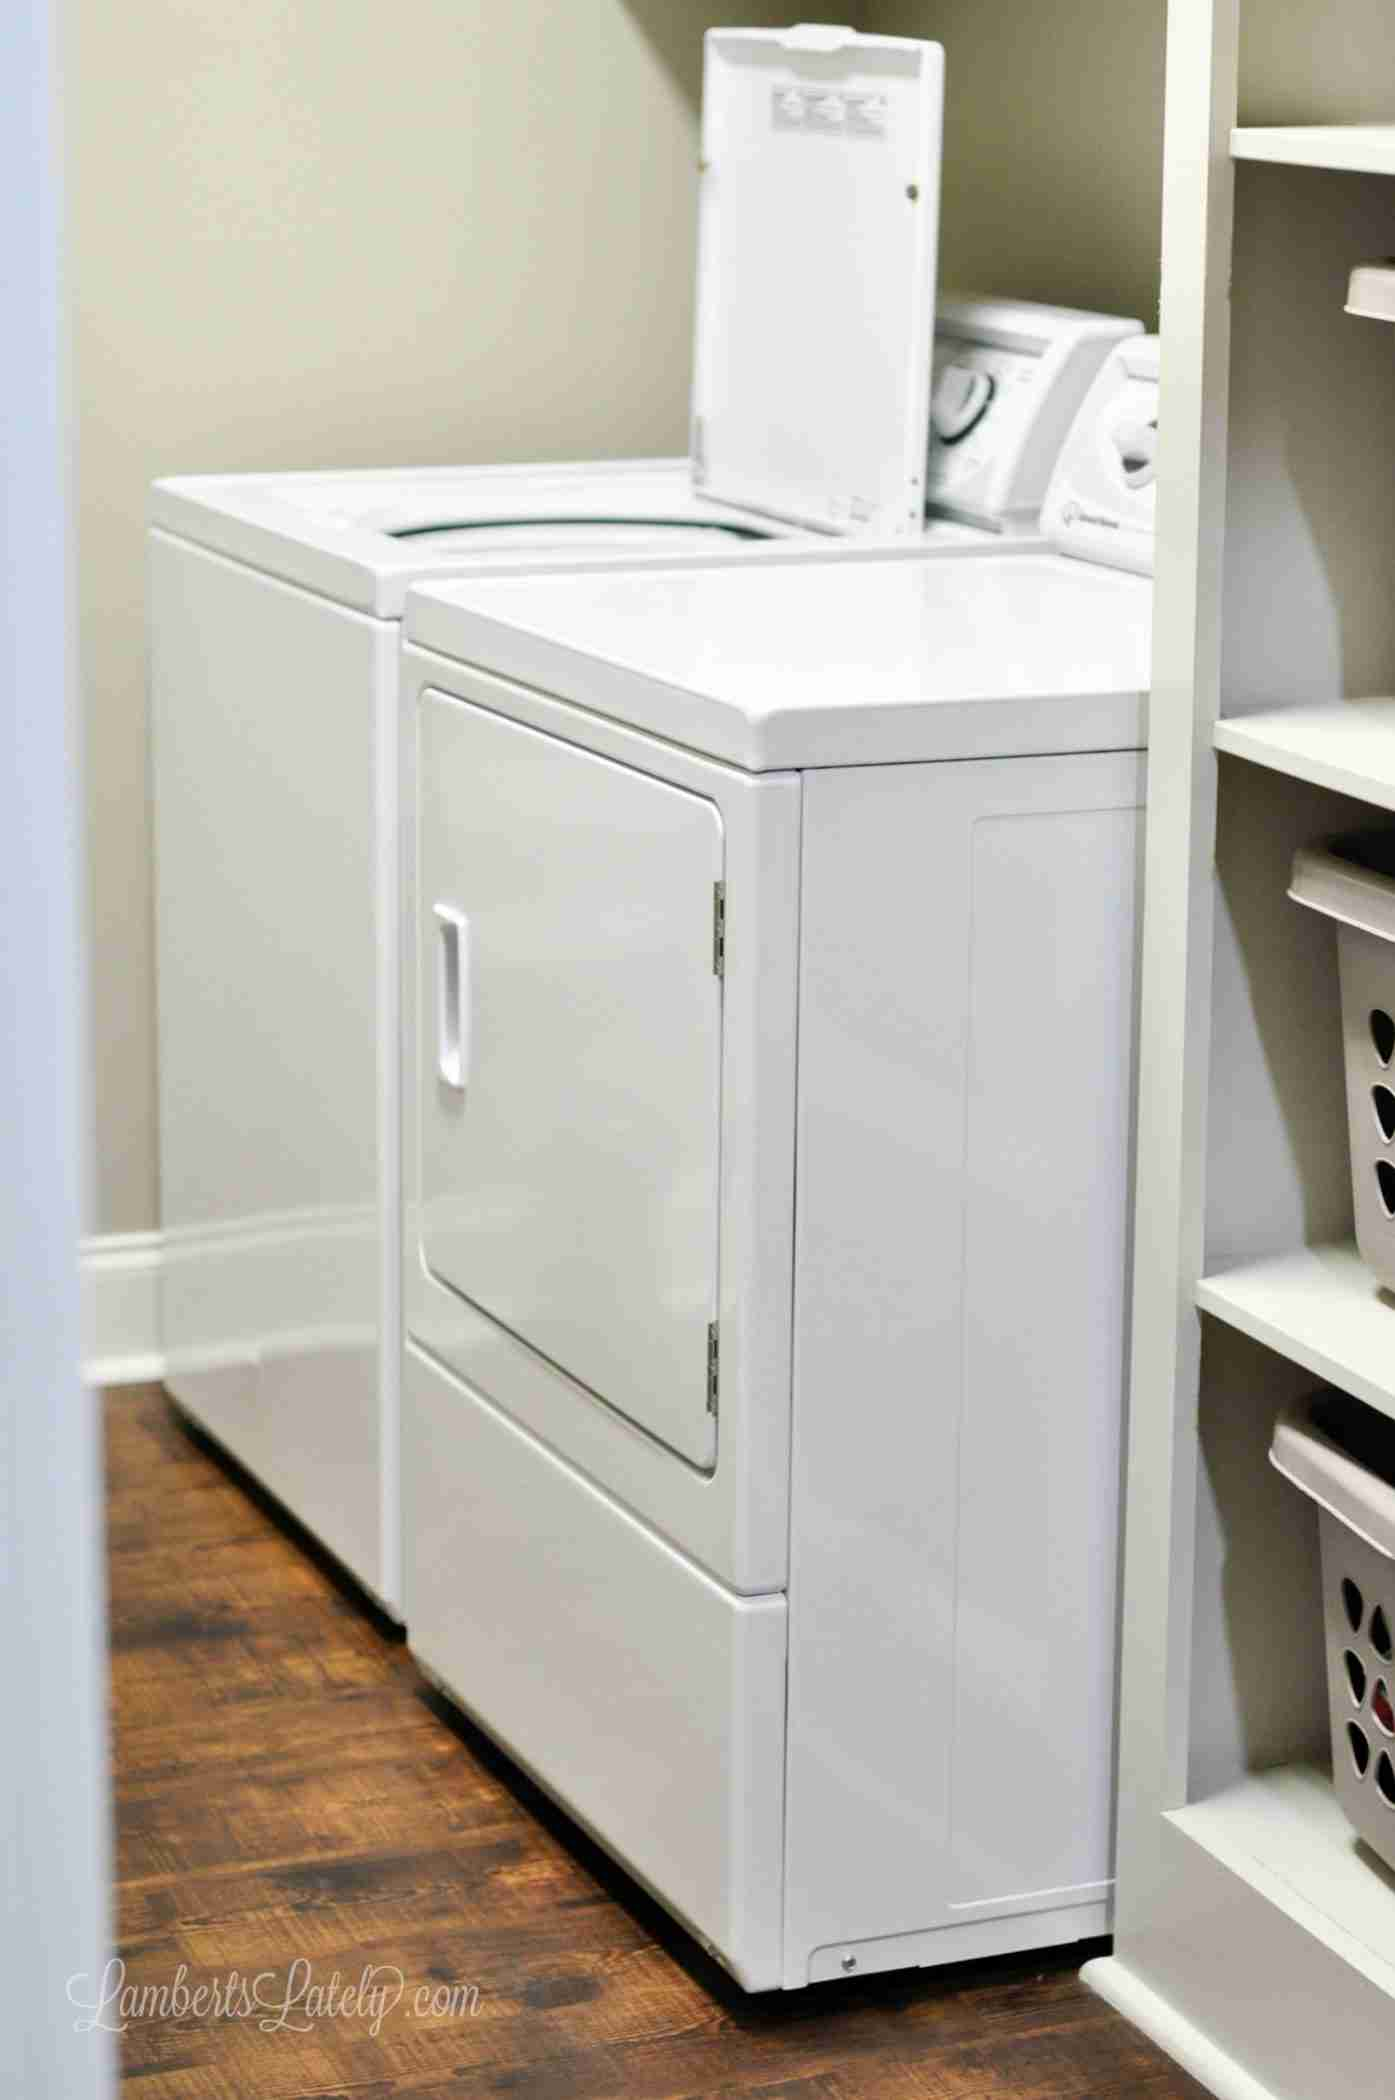 This tutorial for how to deep clean a dryer shows how to get lint out of the lint trap, vent, and hose. Can be used for all kinds of dryers (this one shows a Speed Queen).